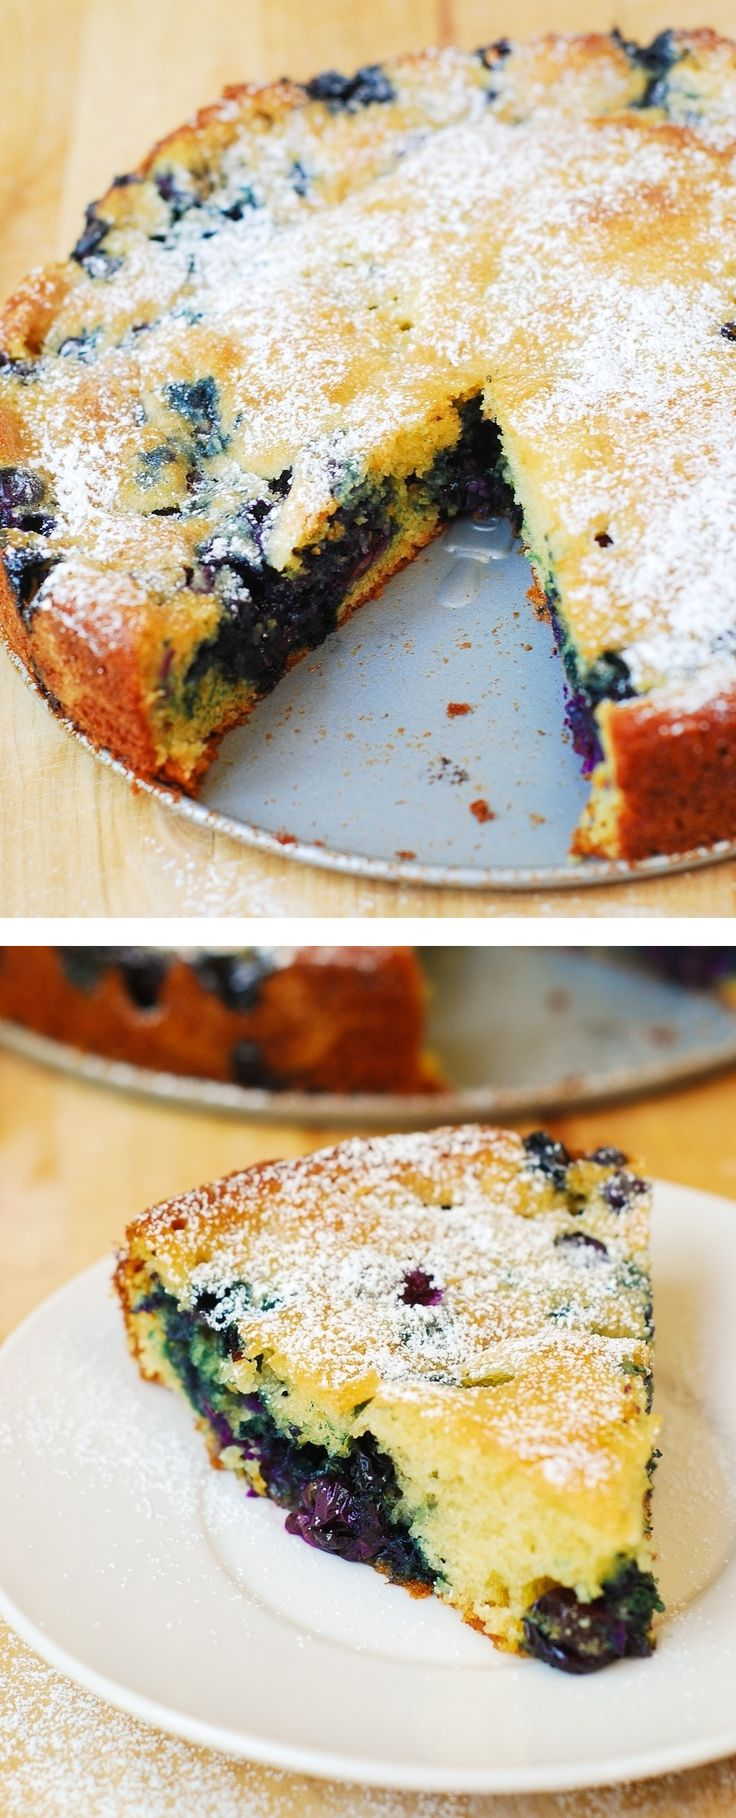 Delicious Blueberry Greek Yogurt Cake made in a springform baking pan. Greek yogurt gives a richer texture to the batter! JuliasAlbum.com  #berry_cake #summer_recipes